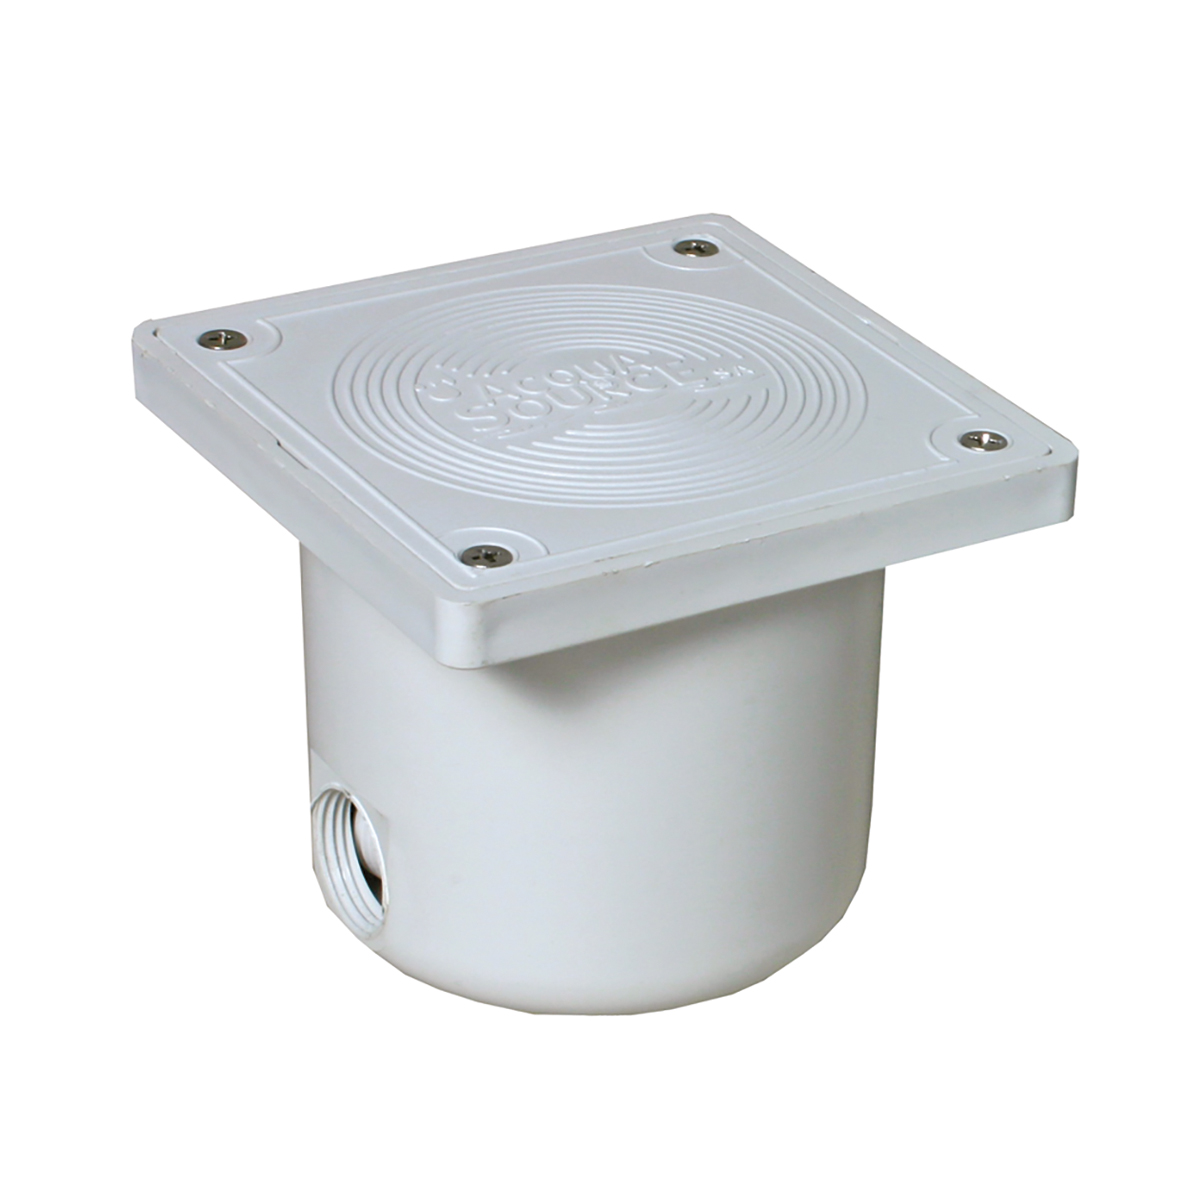 Buy swimming pool Deck Box/Light connection box online in Dubai UAE